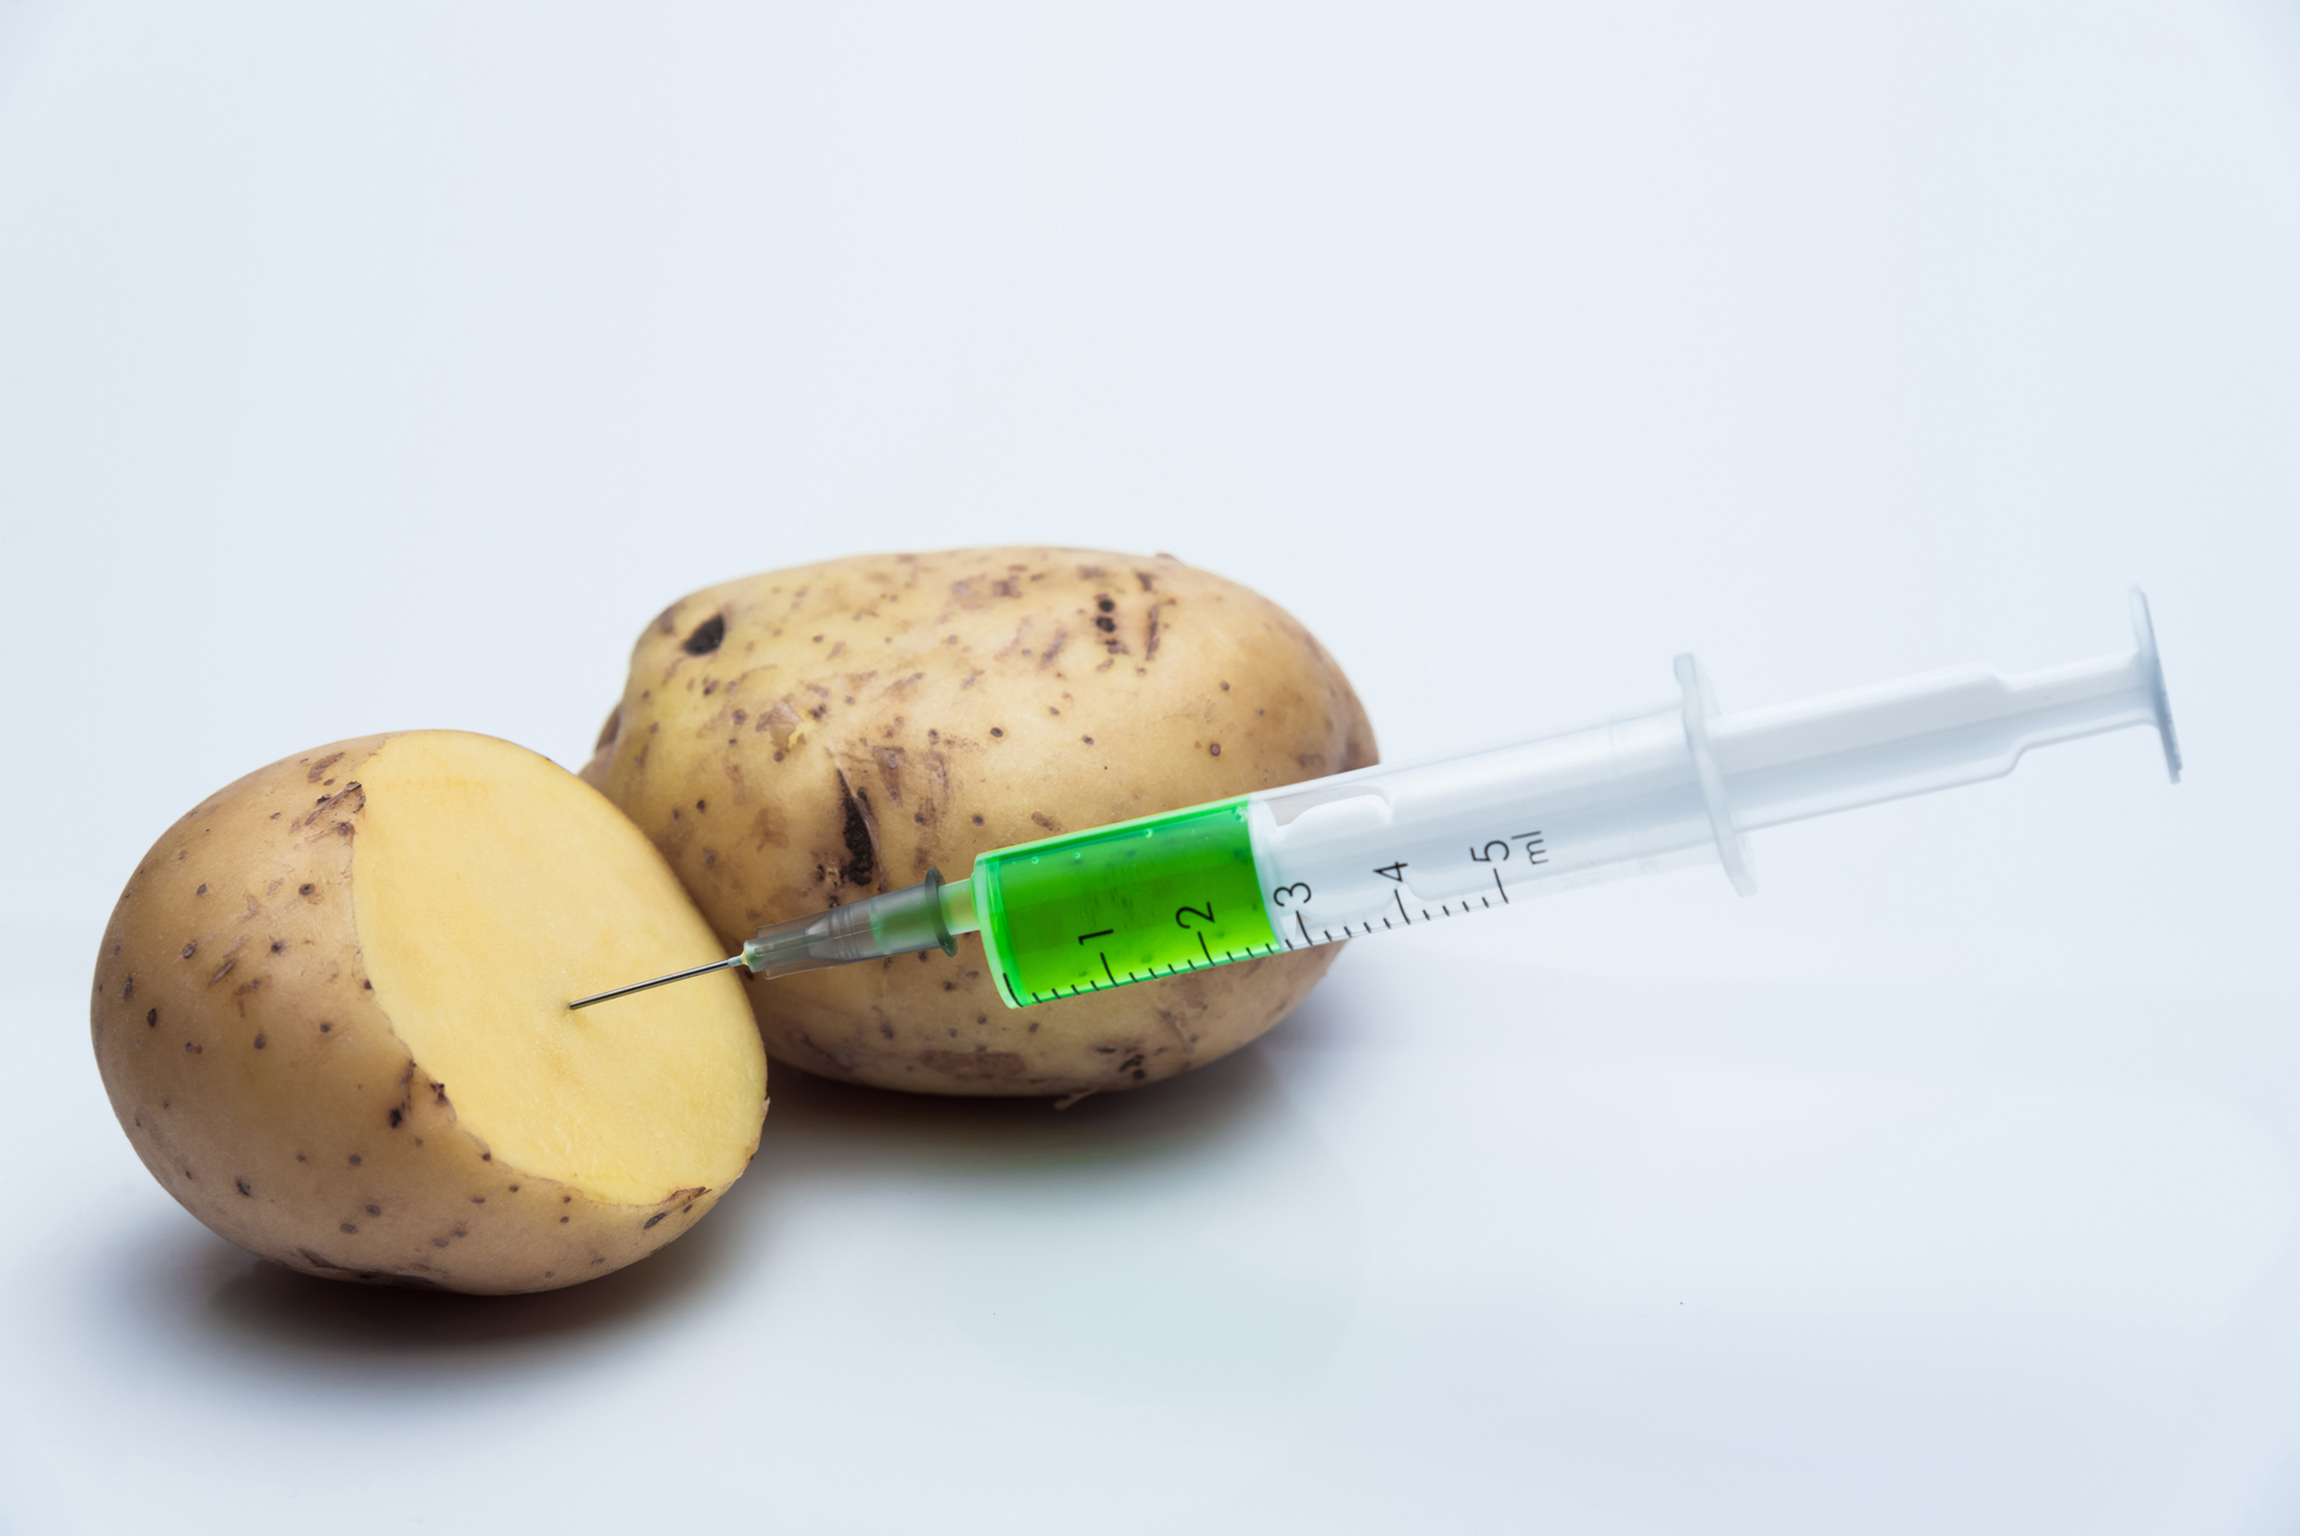 GMO potatoes: are they safe?